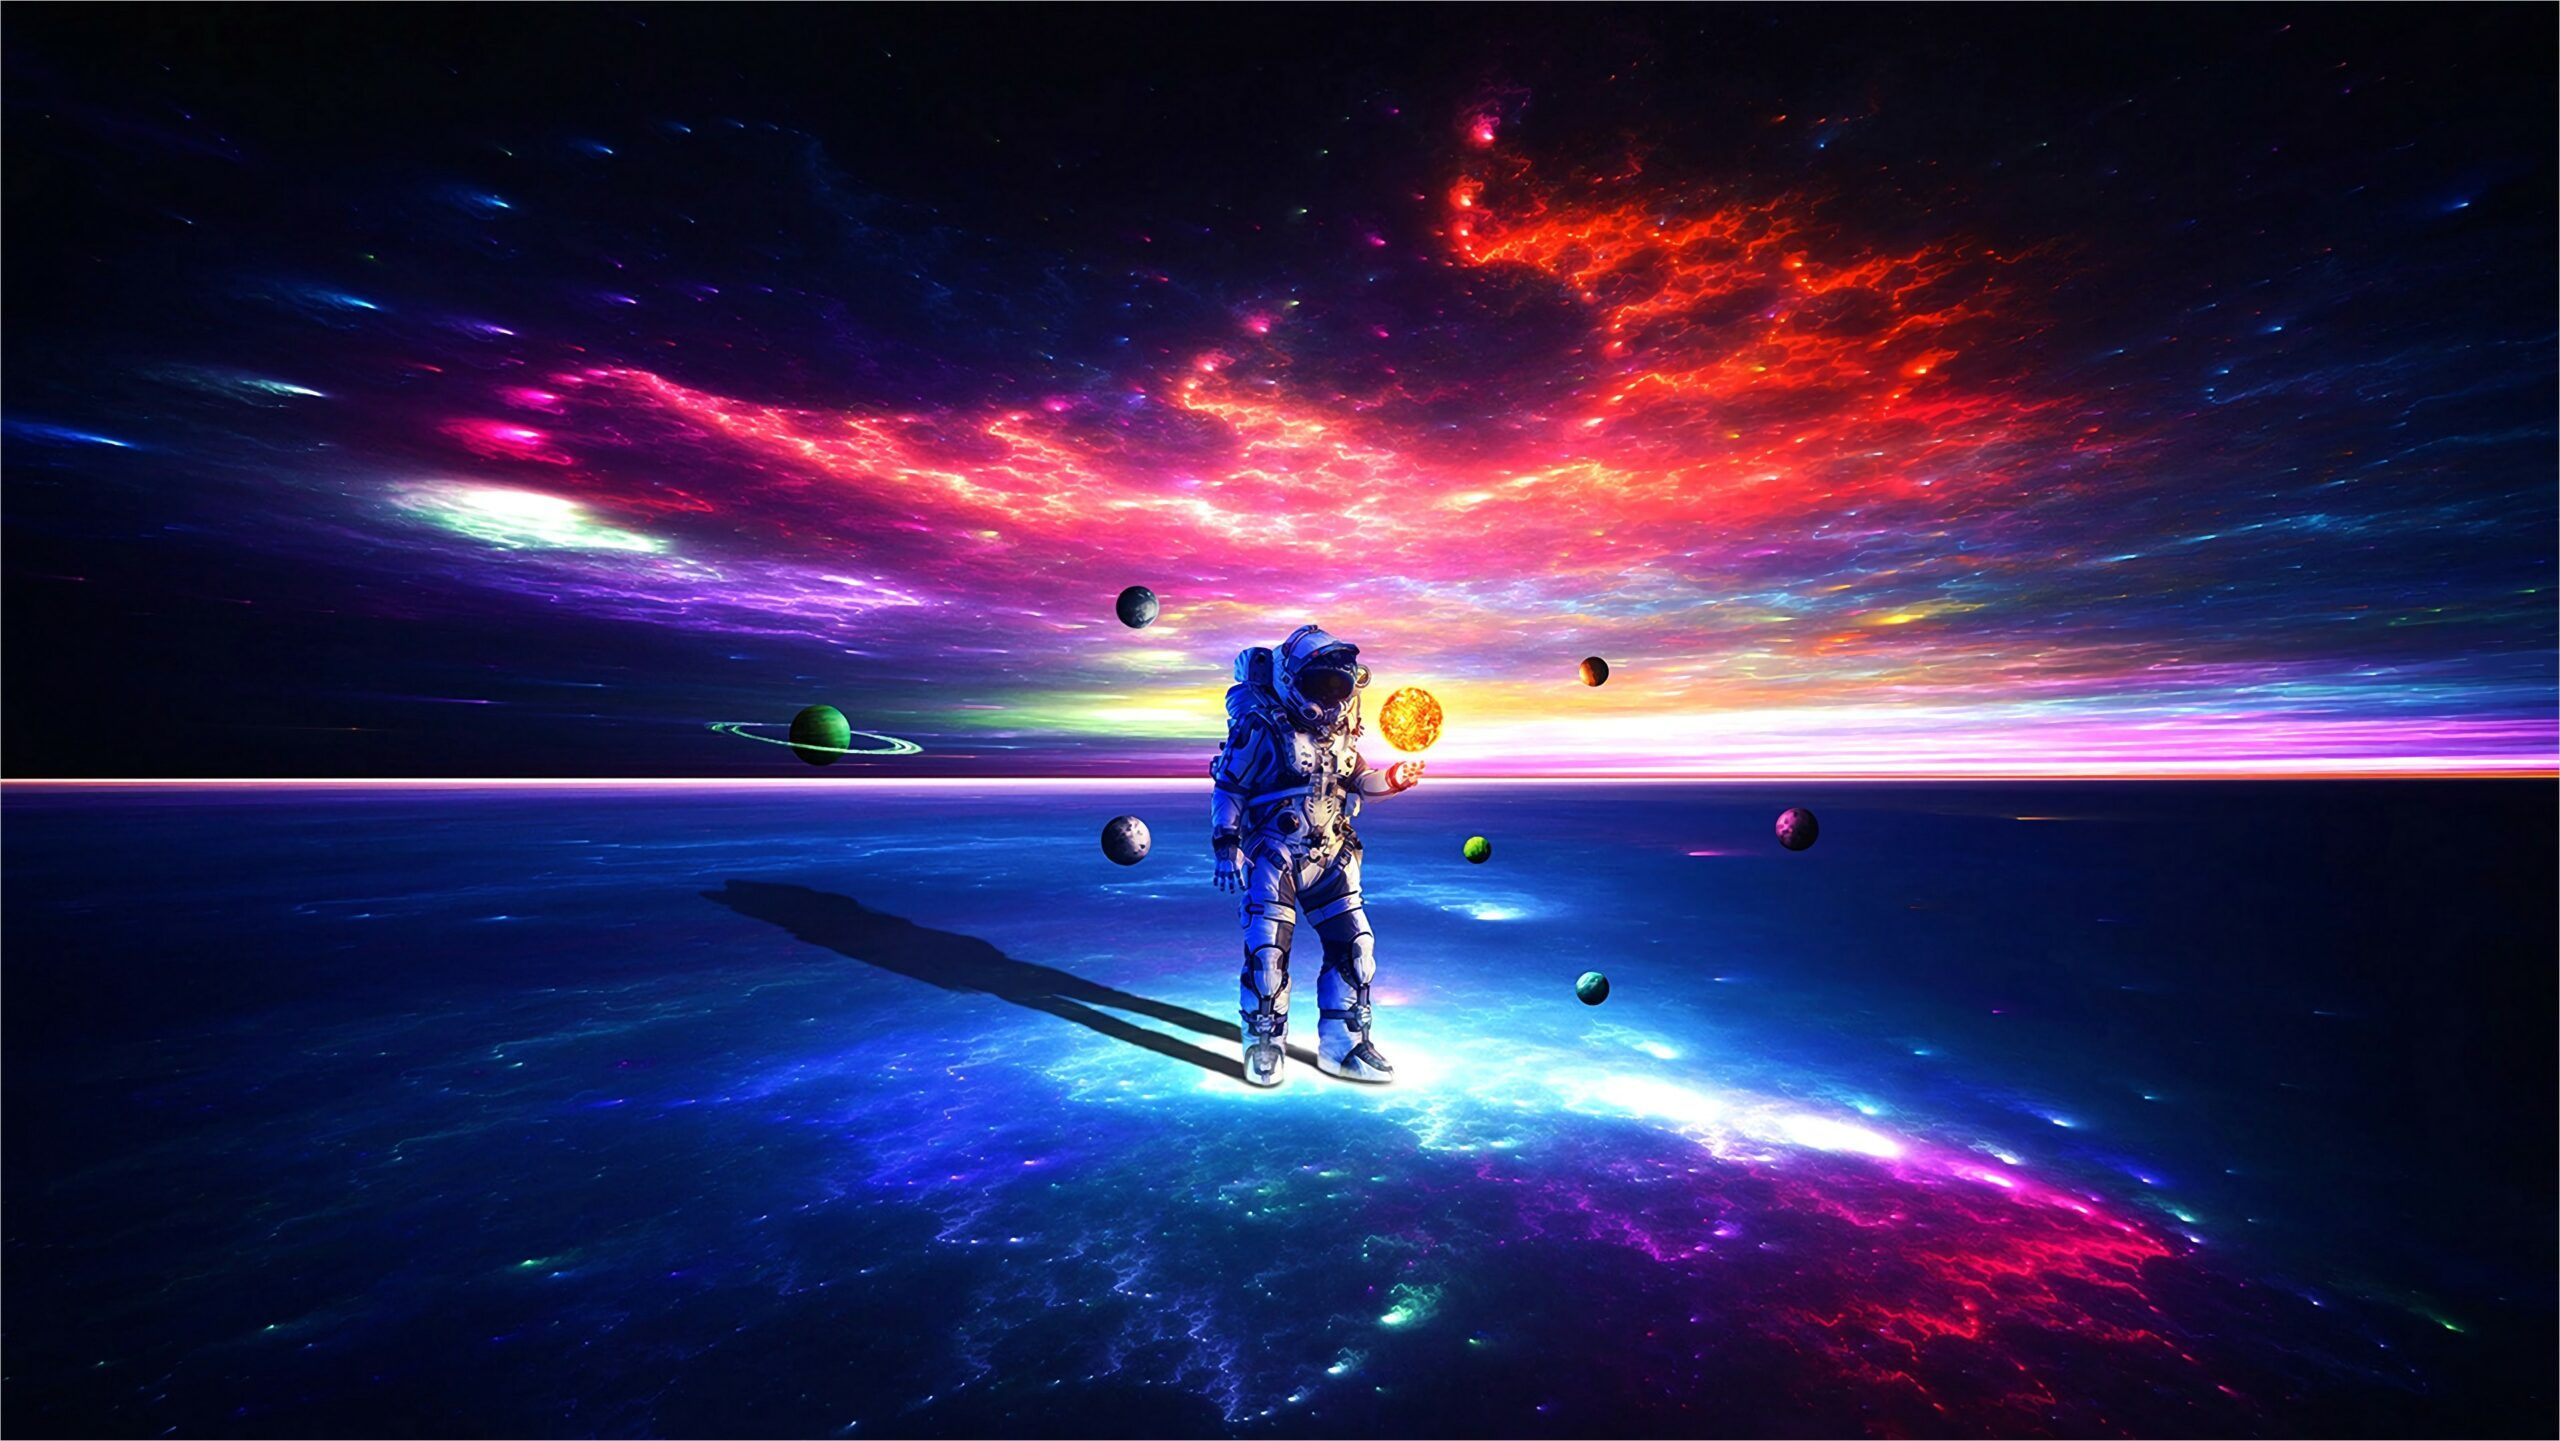 4k Wallpaper 3840 215 2160 Space In 2020 Space Backgrounds Hd Wallpaper Background